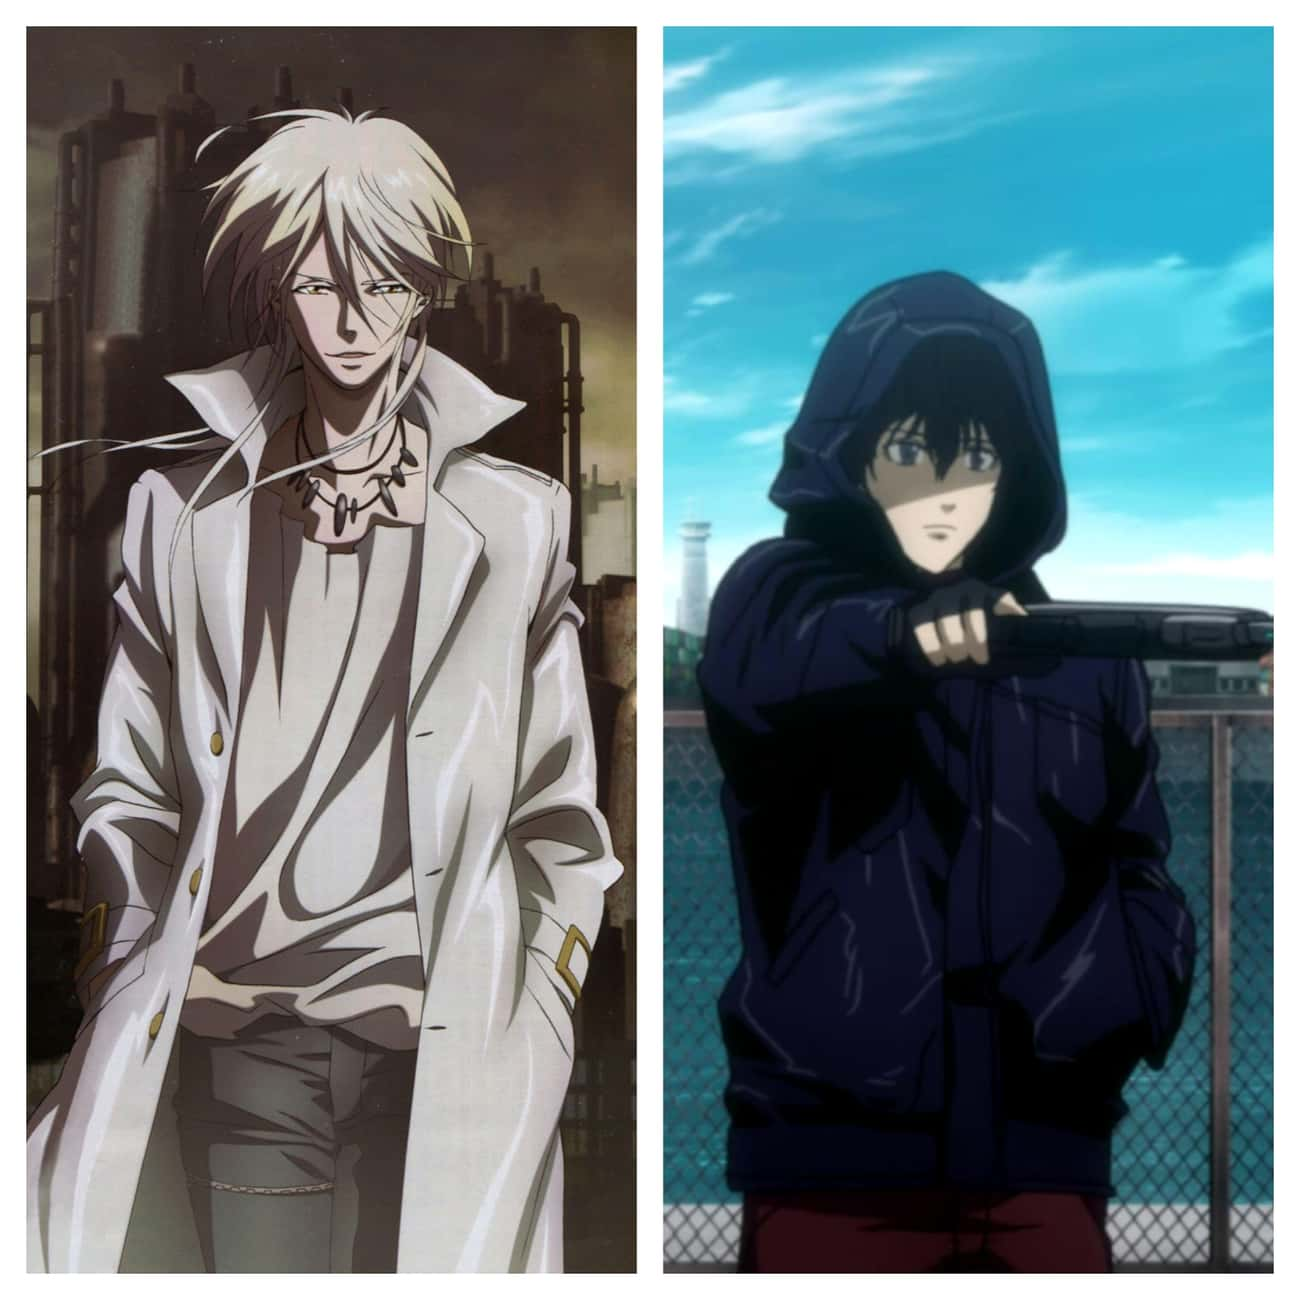 Psycho-Pass is listed (or ranked) 3 on the list 13 Anime That Switched Studios (For Better Or Worse)